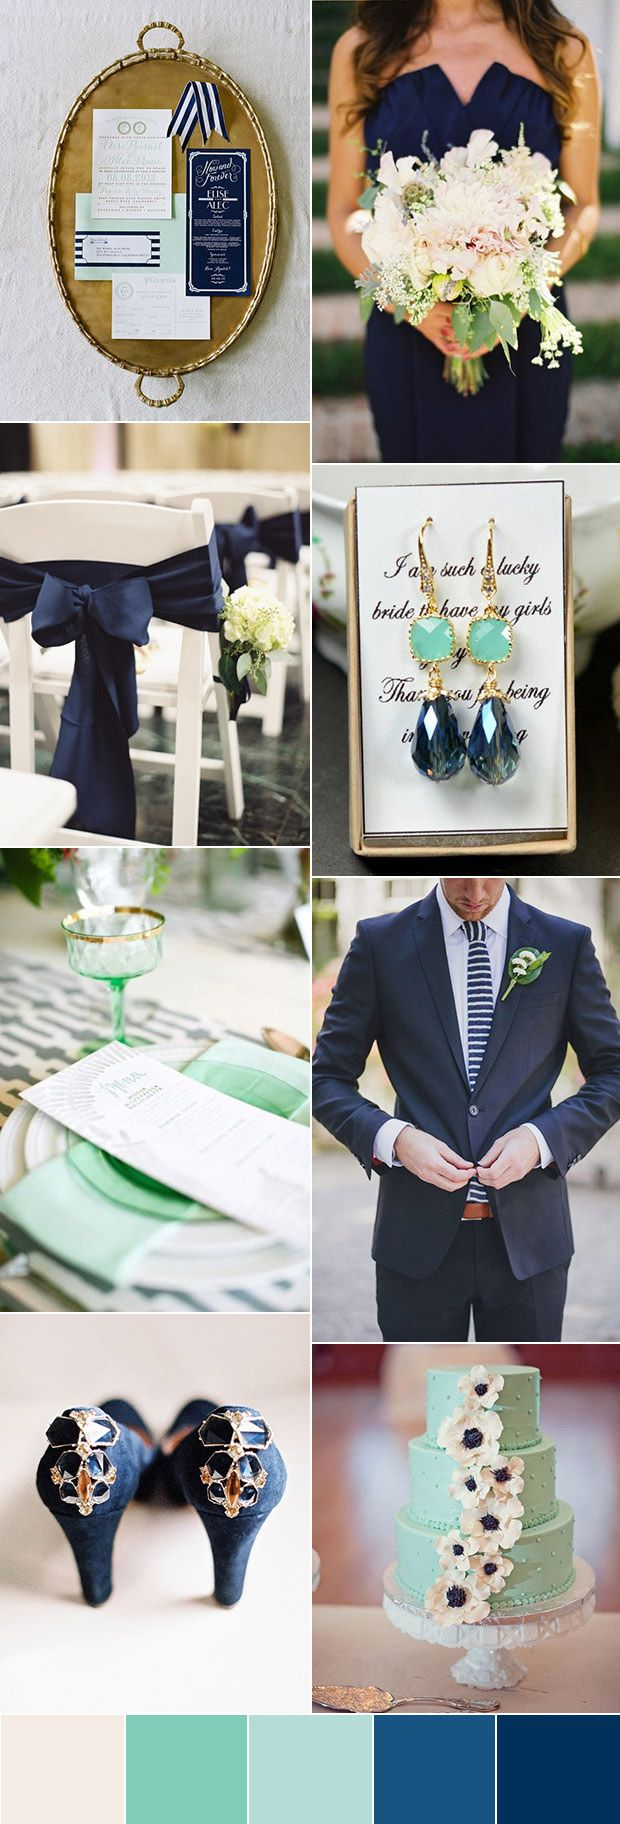 Top 5 Blue Wedding Color Palette Ideas You Will Love | http://www.deerpearlflowers.com/top-5-blue-wedding-color-palette-ideas-you-will-love/